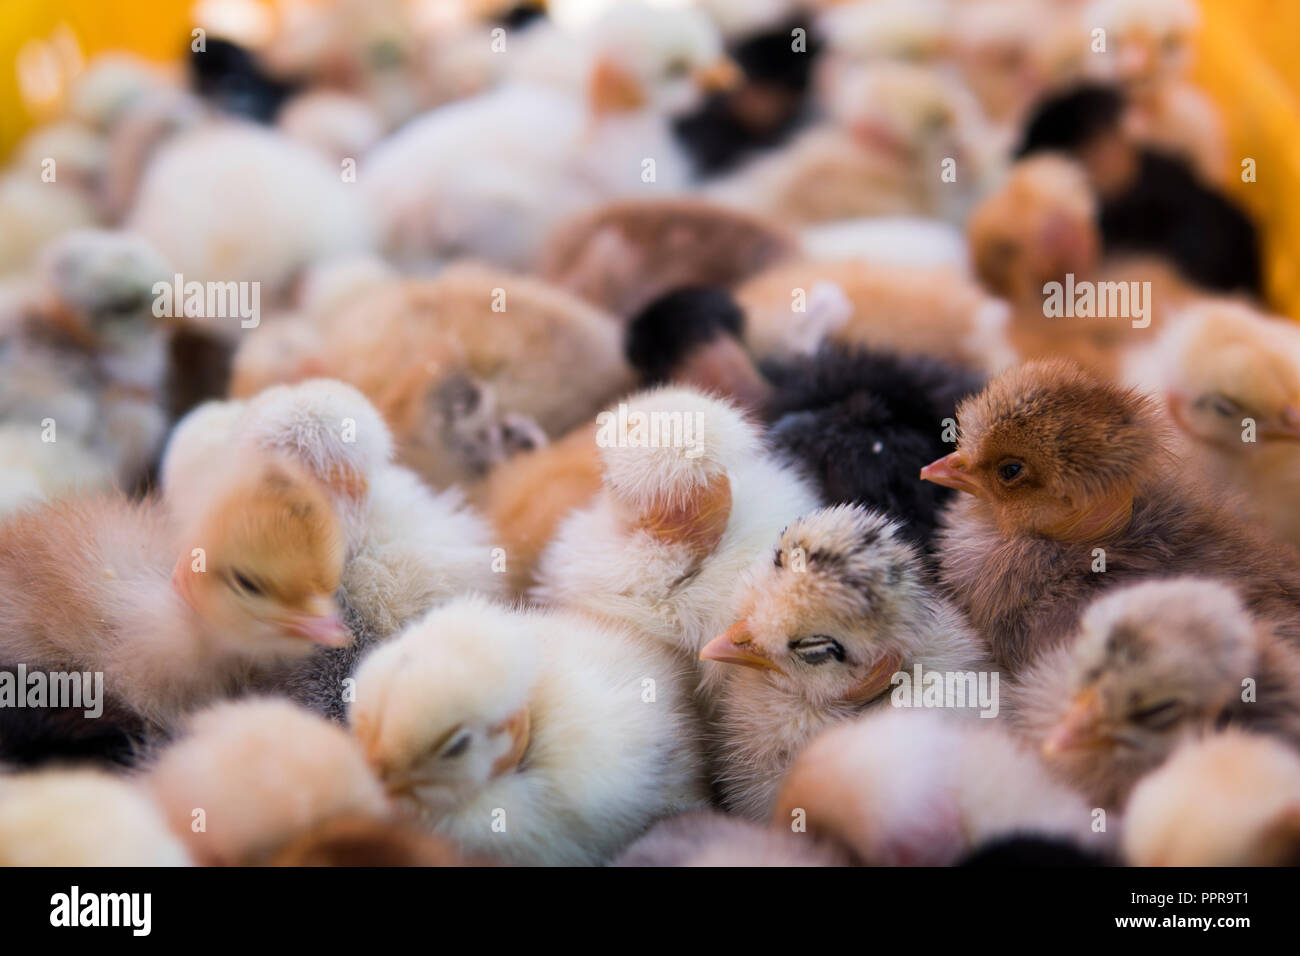 Baby chicken, small and very beautiful yellow chicks are placed in plastic cage box for sale on a fair. Incubator chickens for sale. Agriculture. Farming. - Stock Image